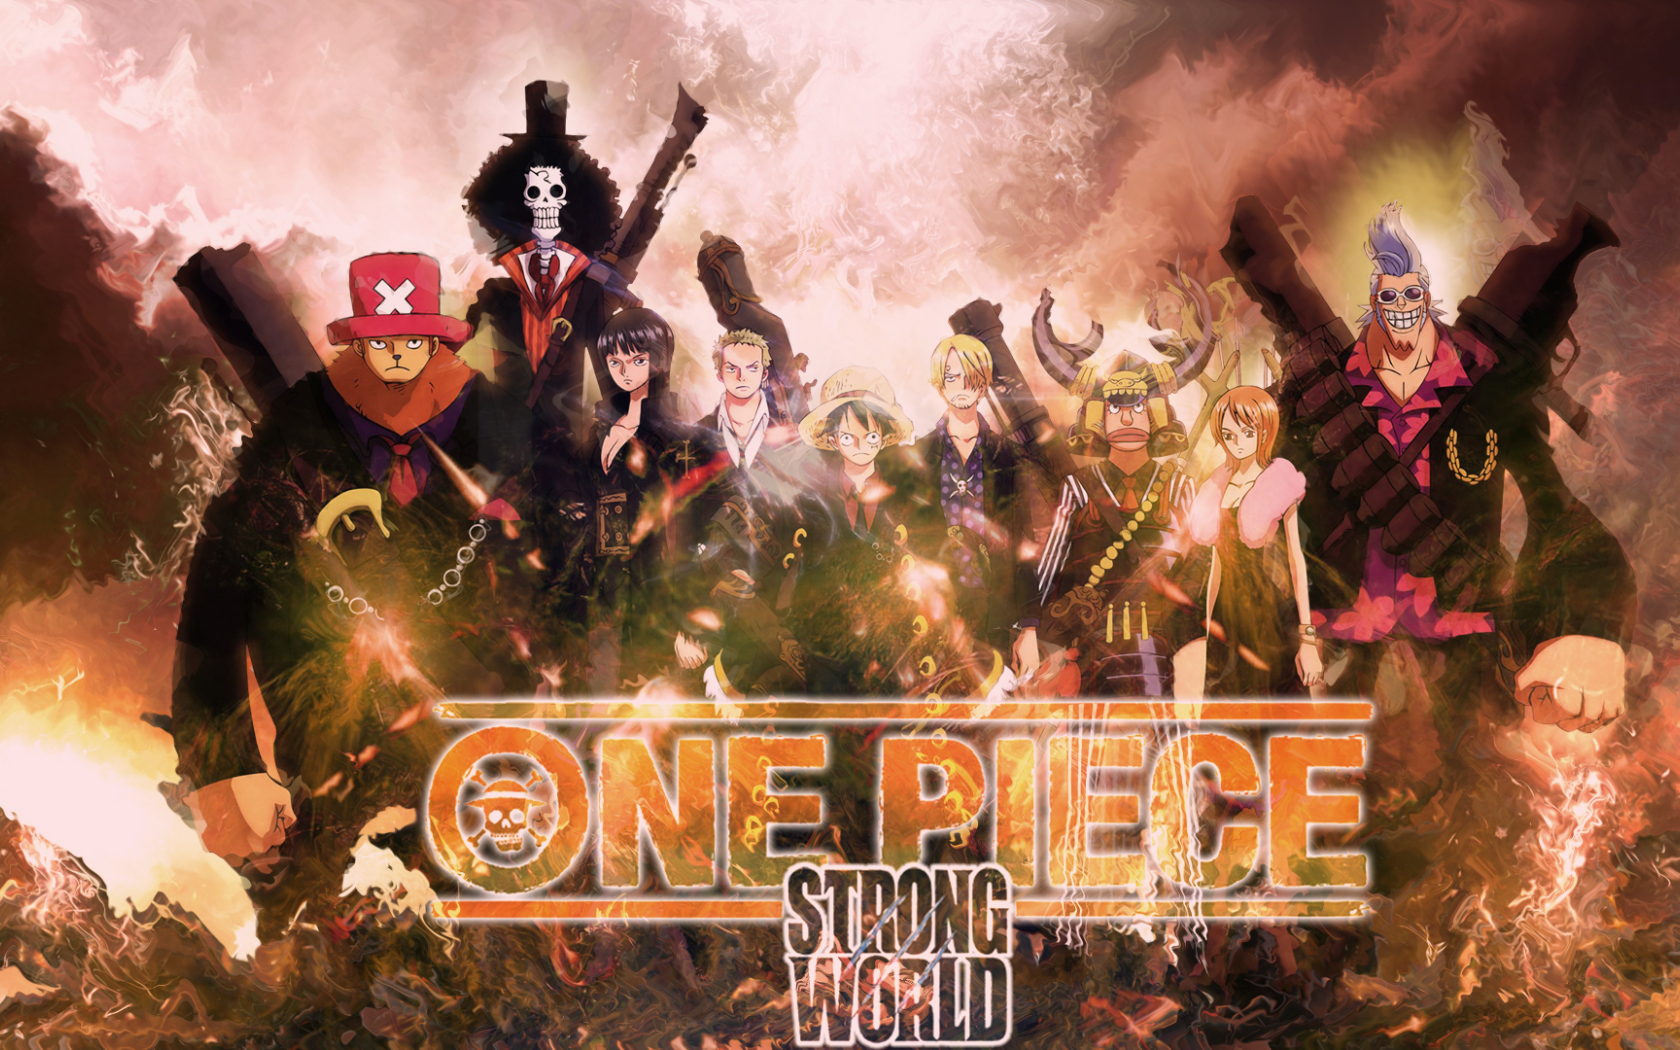 Free Download Wallpaper One Piece Strong World By Ichig0360